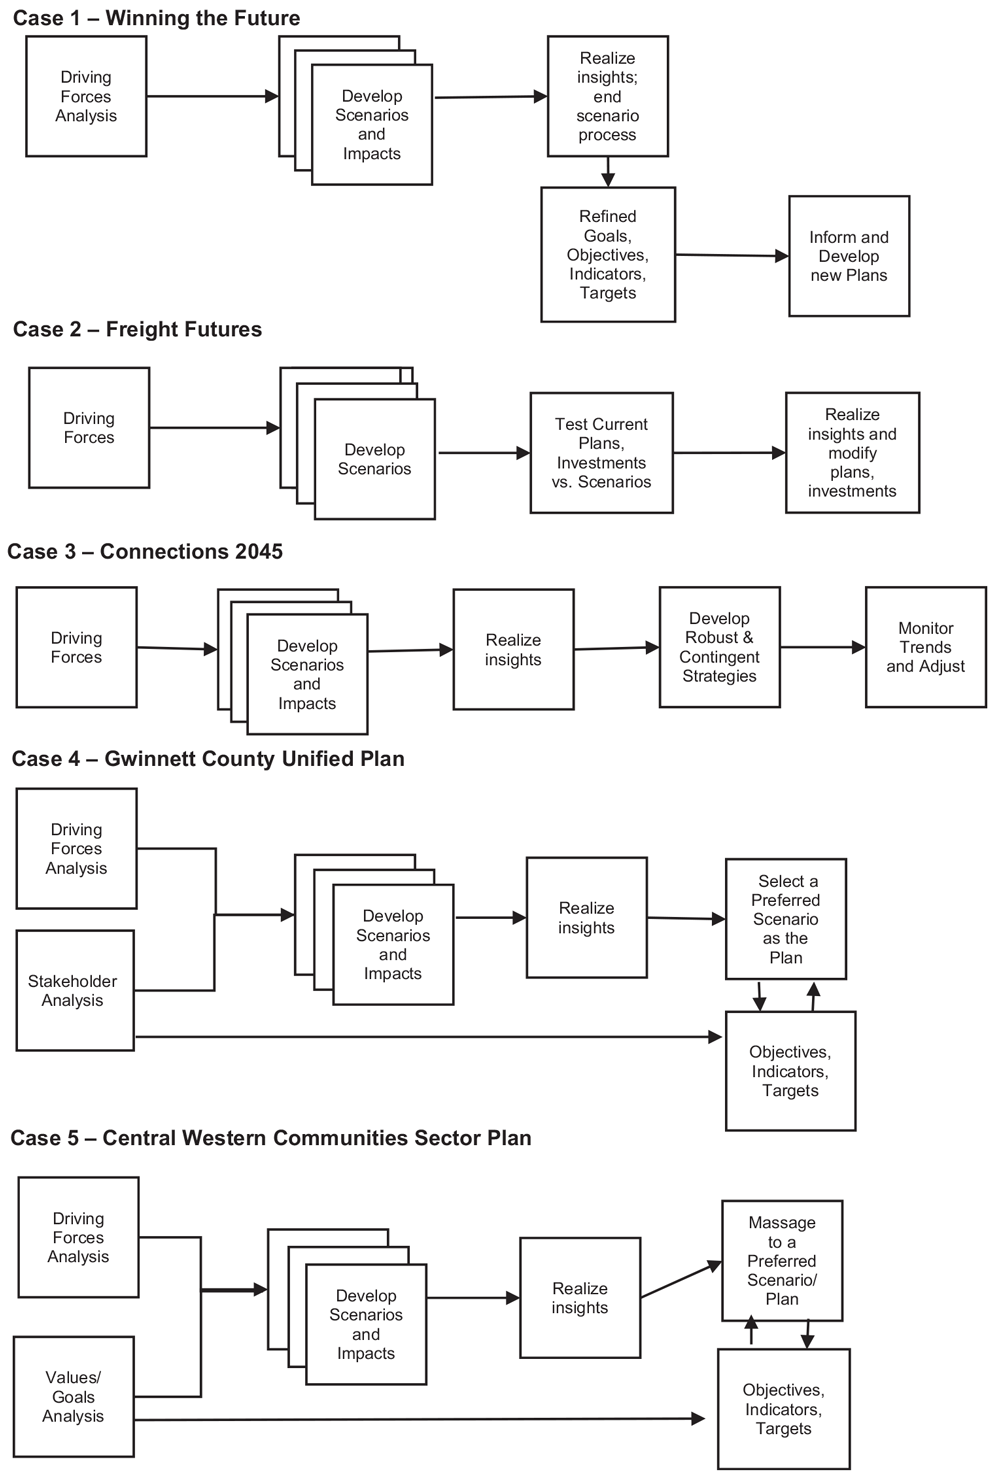 """Five case study scenario planning approaches chart. From""""Using Exploratory Scenarios in Planning Practice,"""" Journal of the American Planning Association (Vol. 86, No. 4)."""